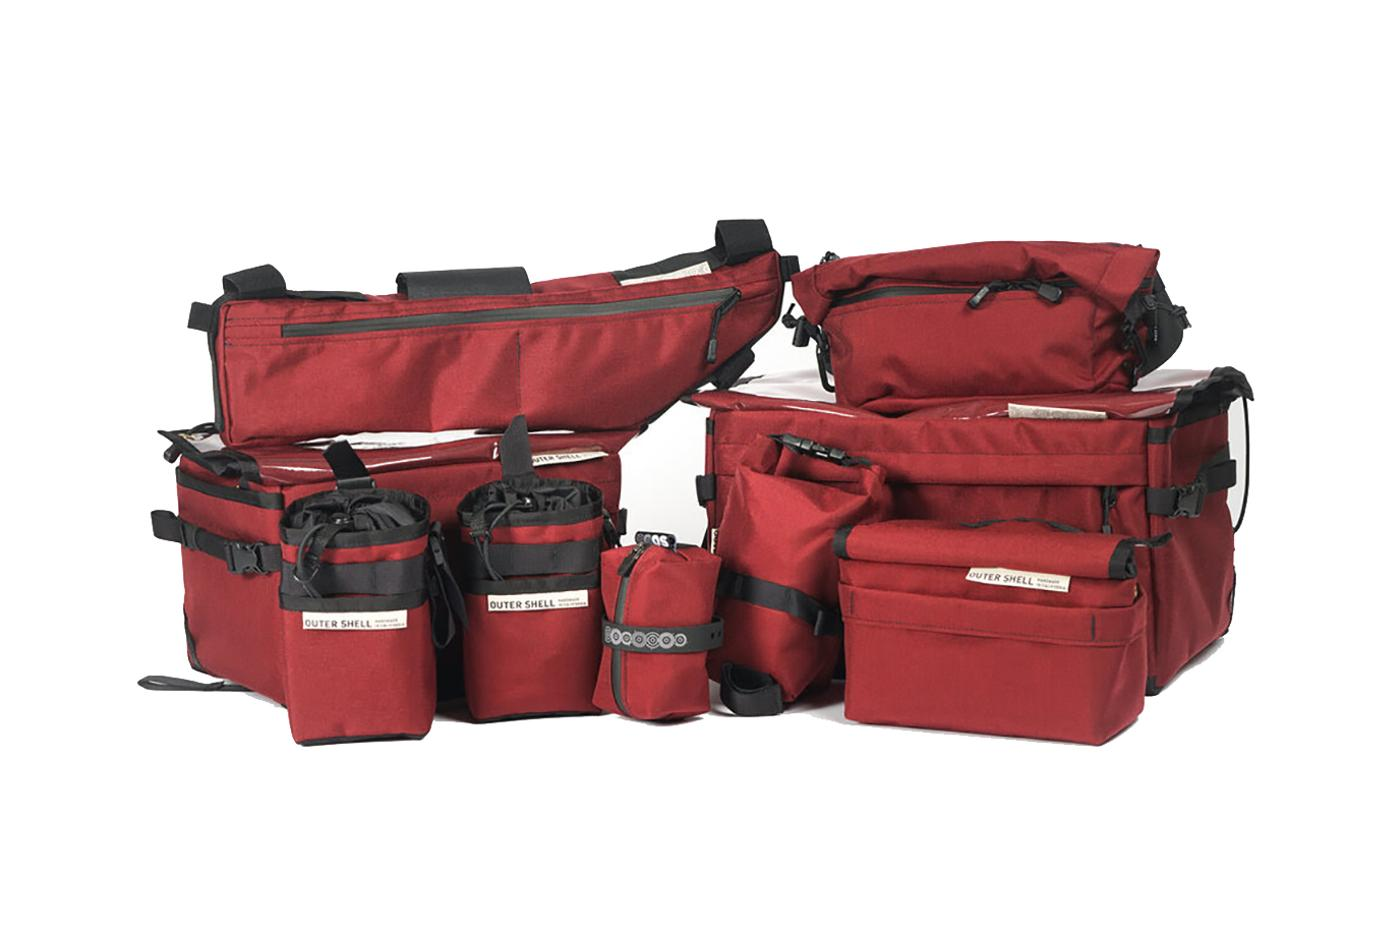 Outer Shell Now Offers Entire Catalog in Burgundy Cordura Fabric